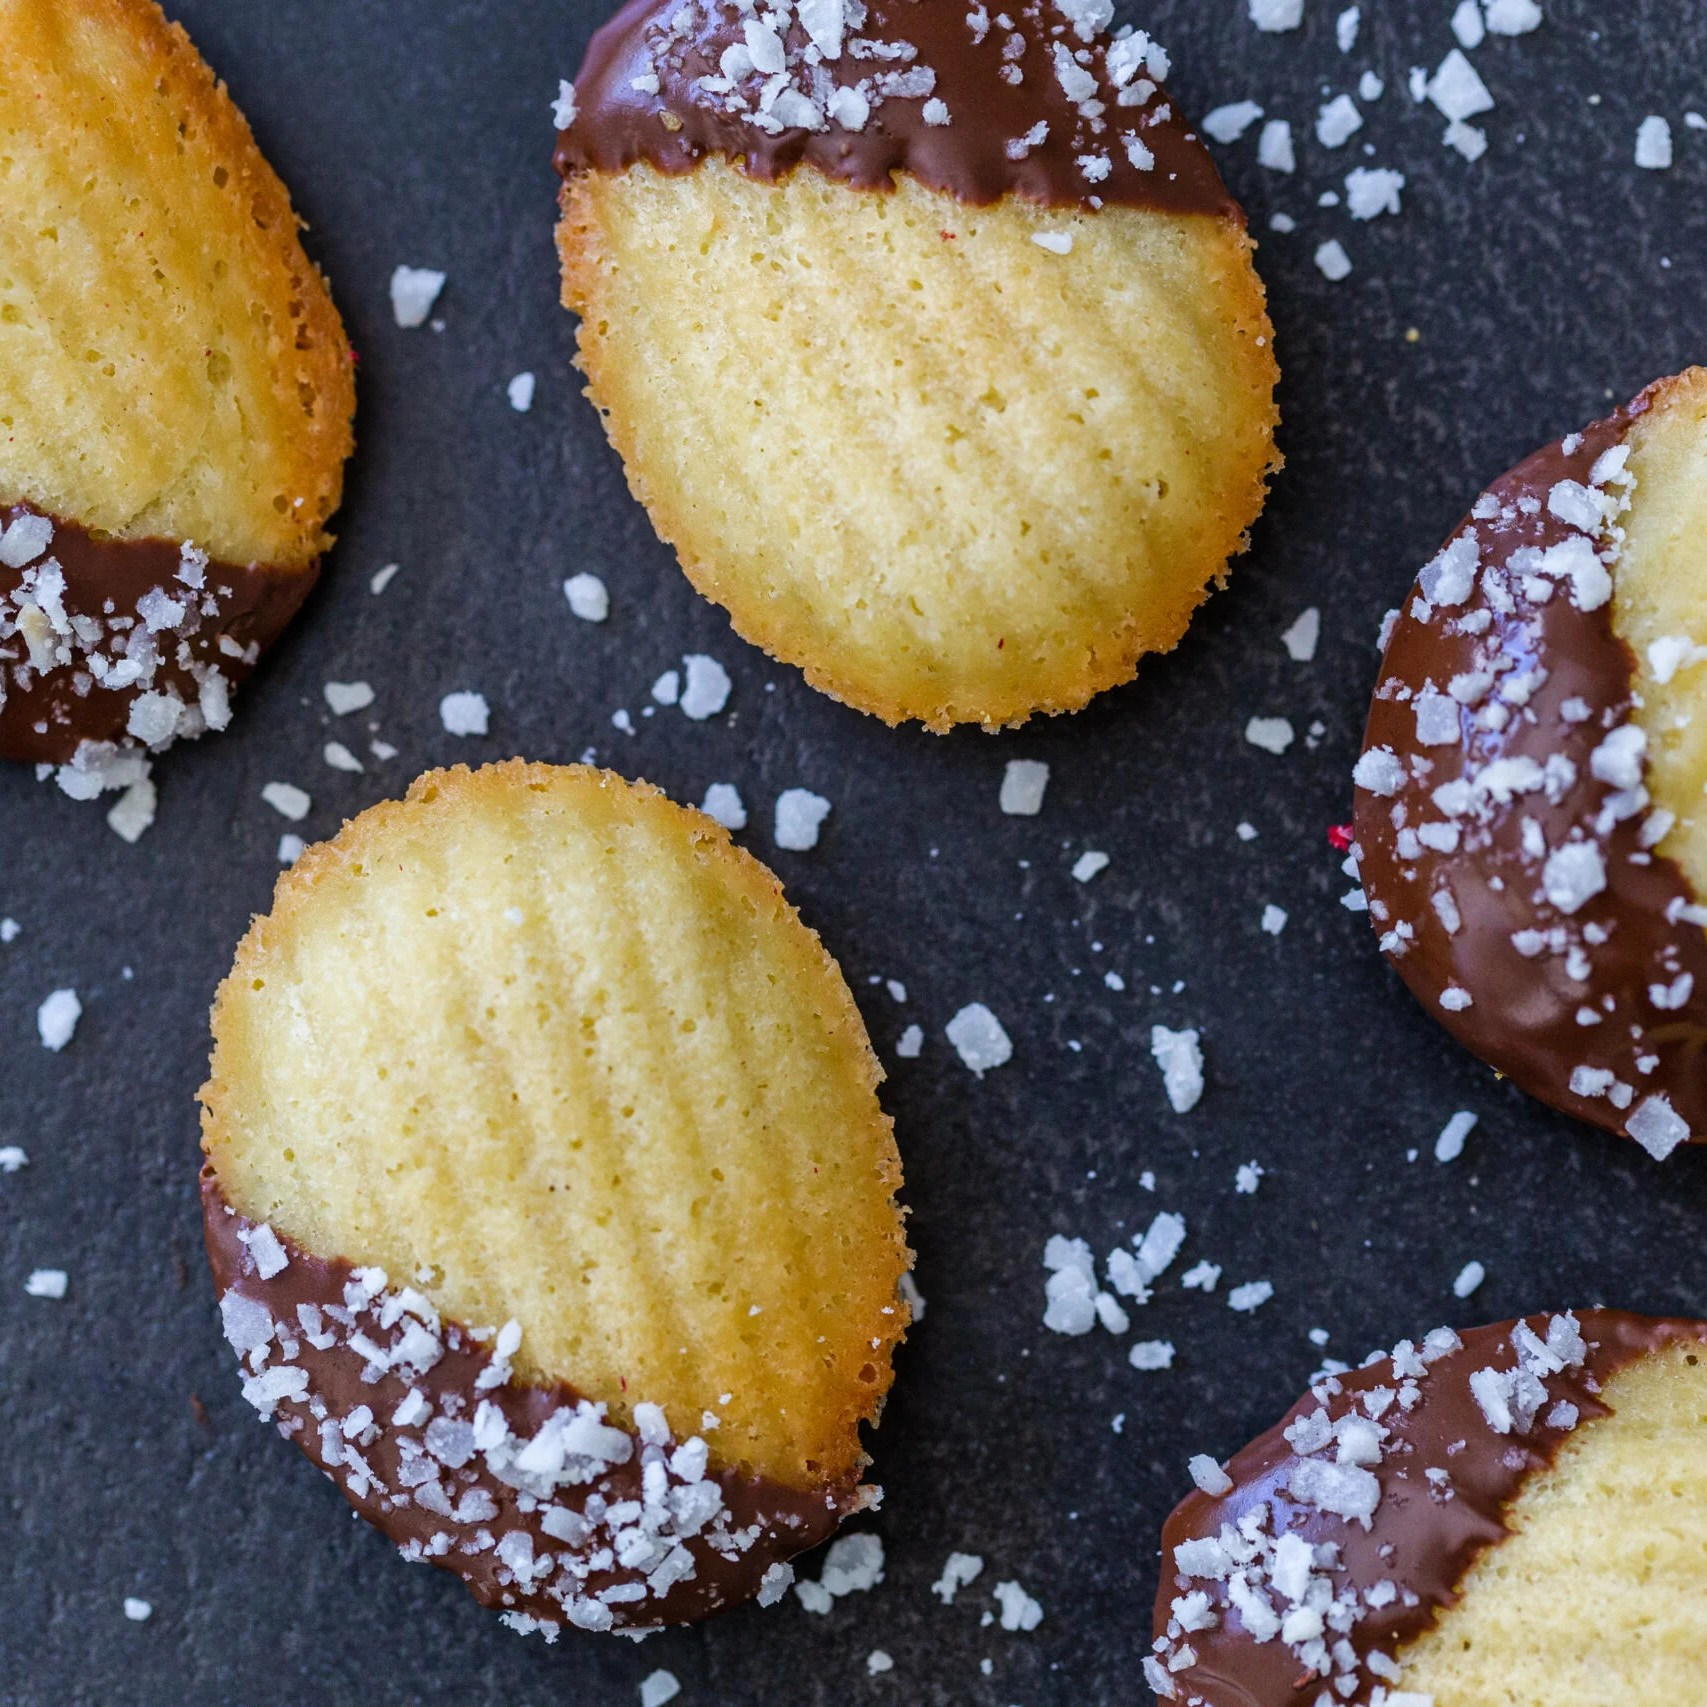 Madeleine cookies dipped in chocolate